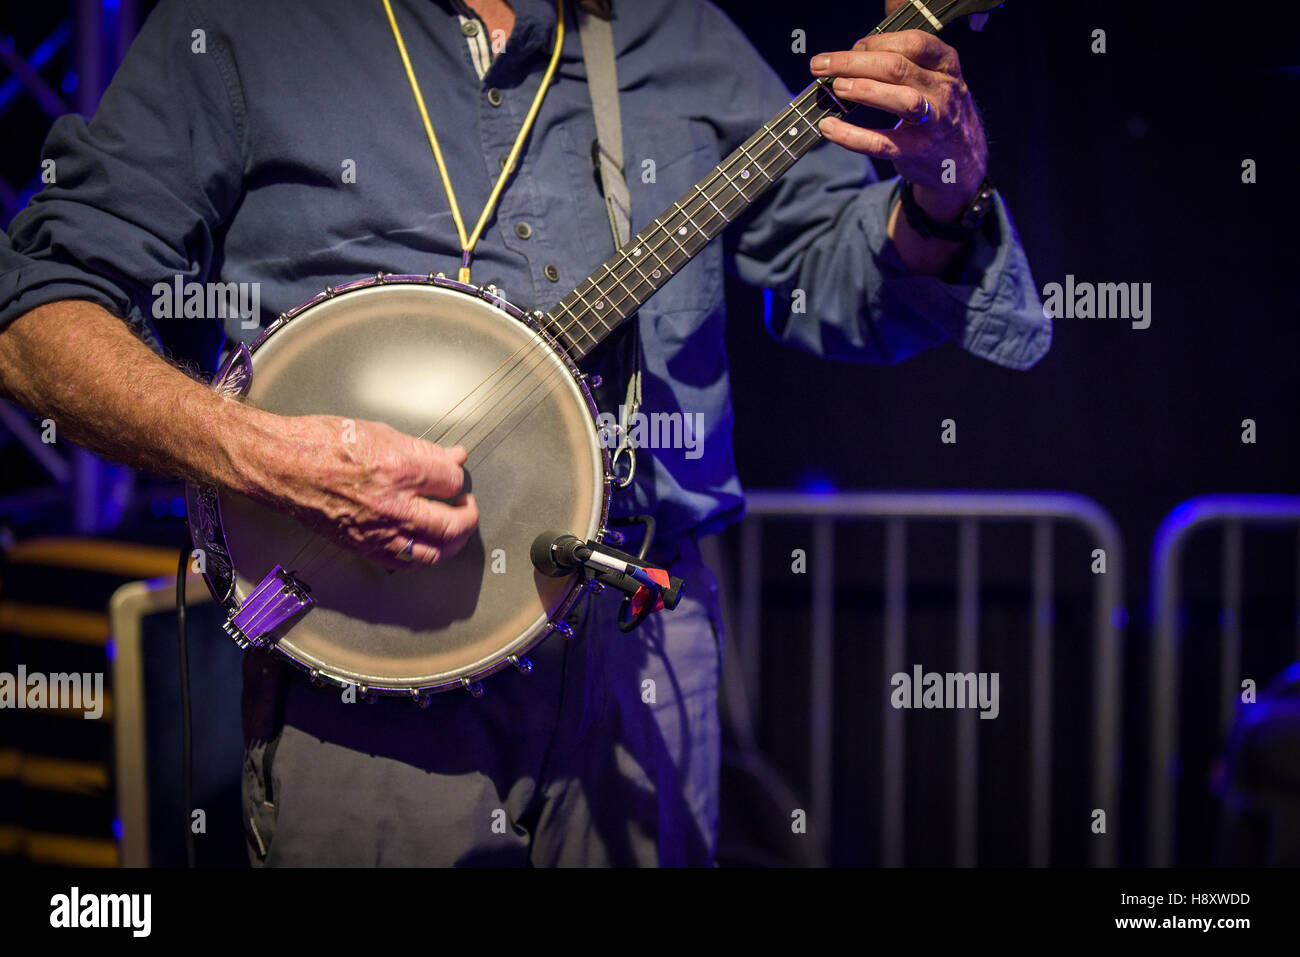 A banjo player performing. - Stock Image